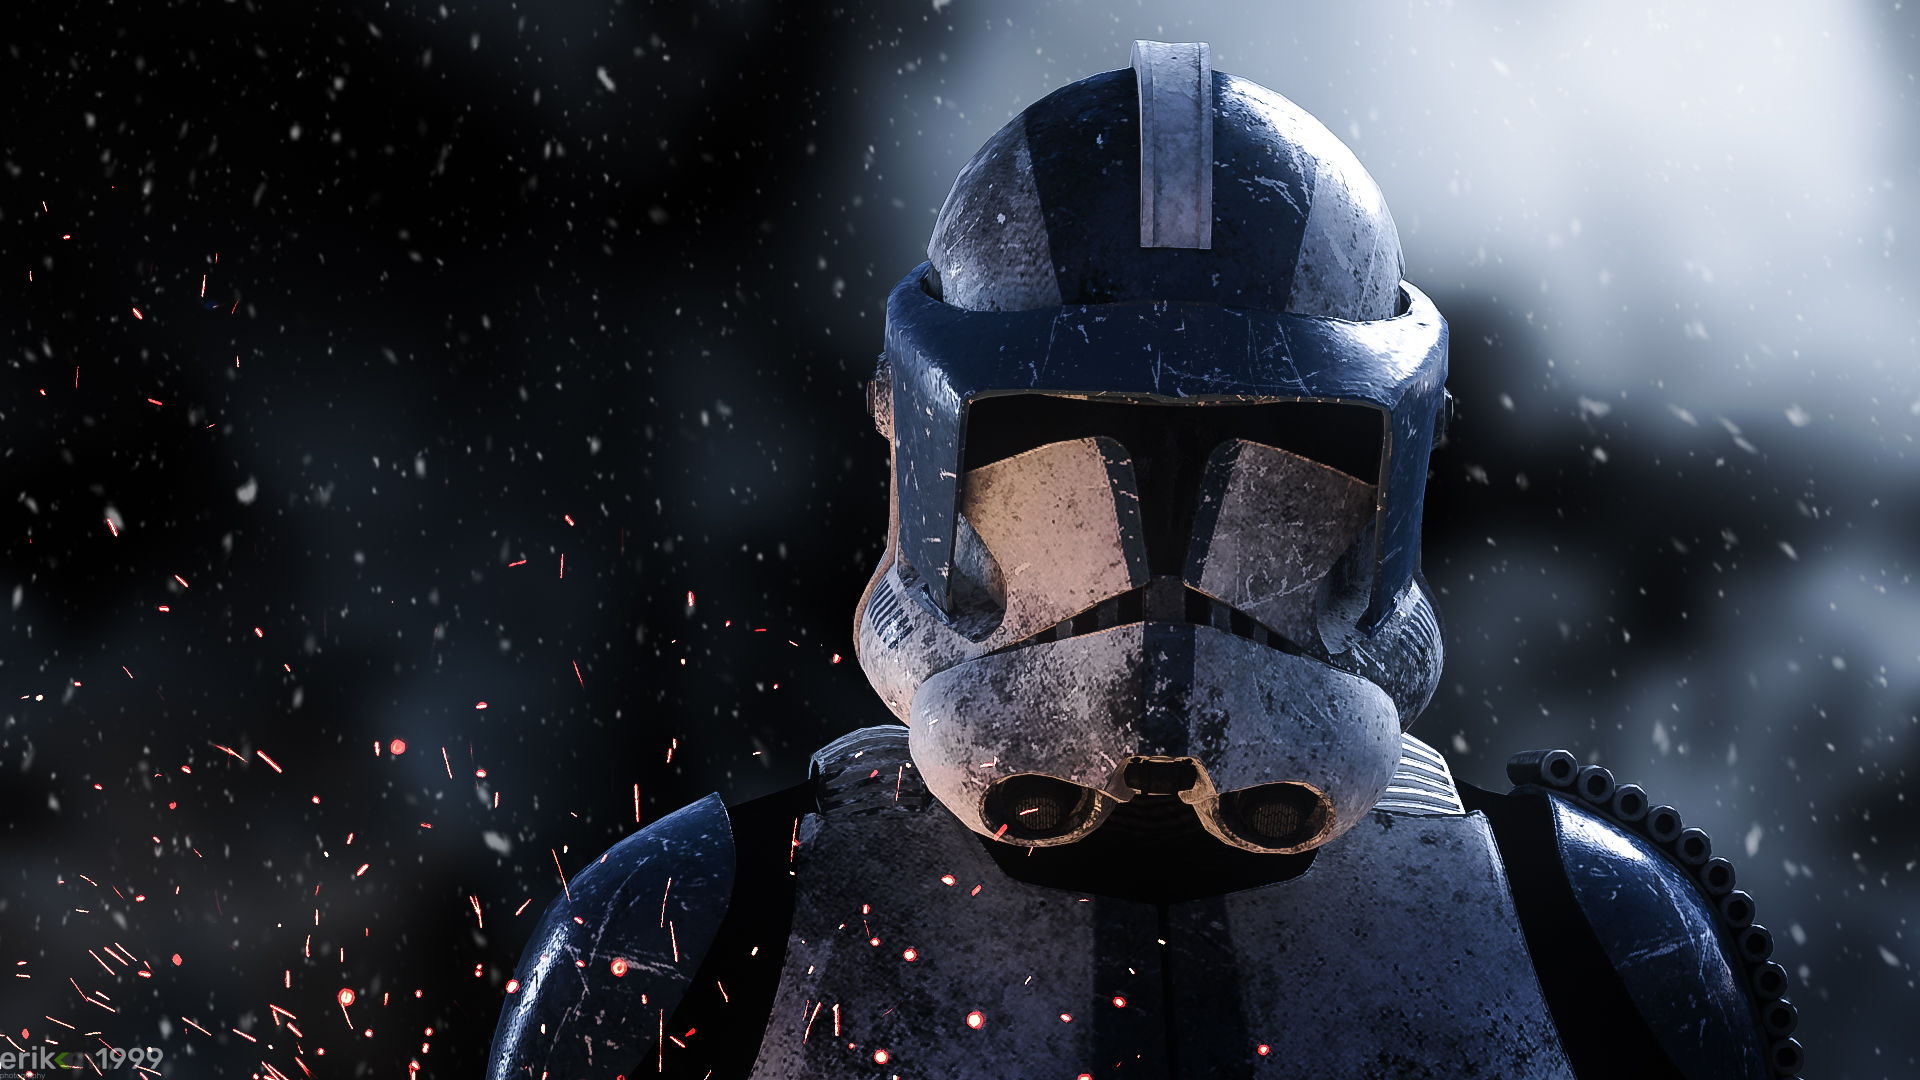 Star Wars Hd Wallpapers 1080p Posted By Zoey Walker